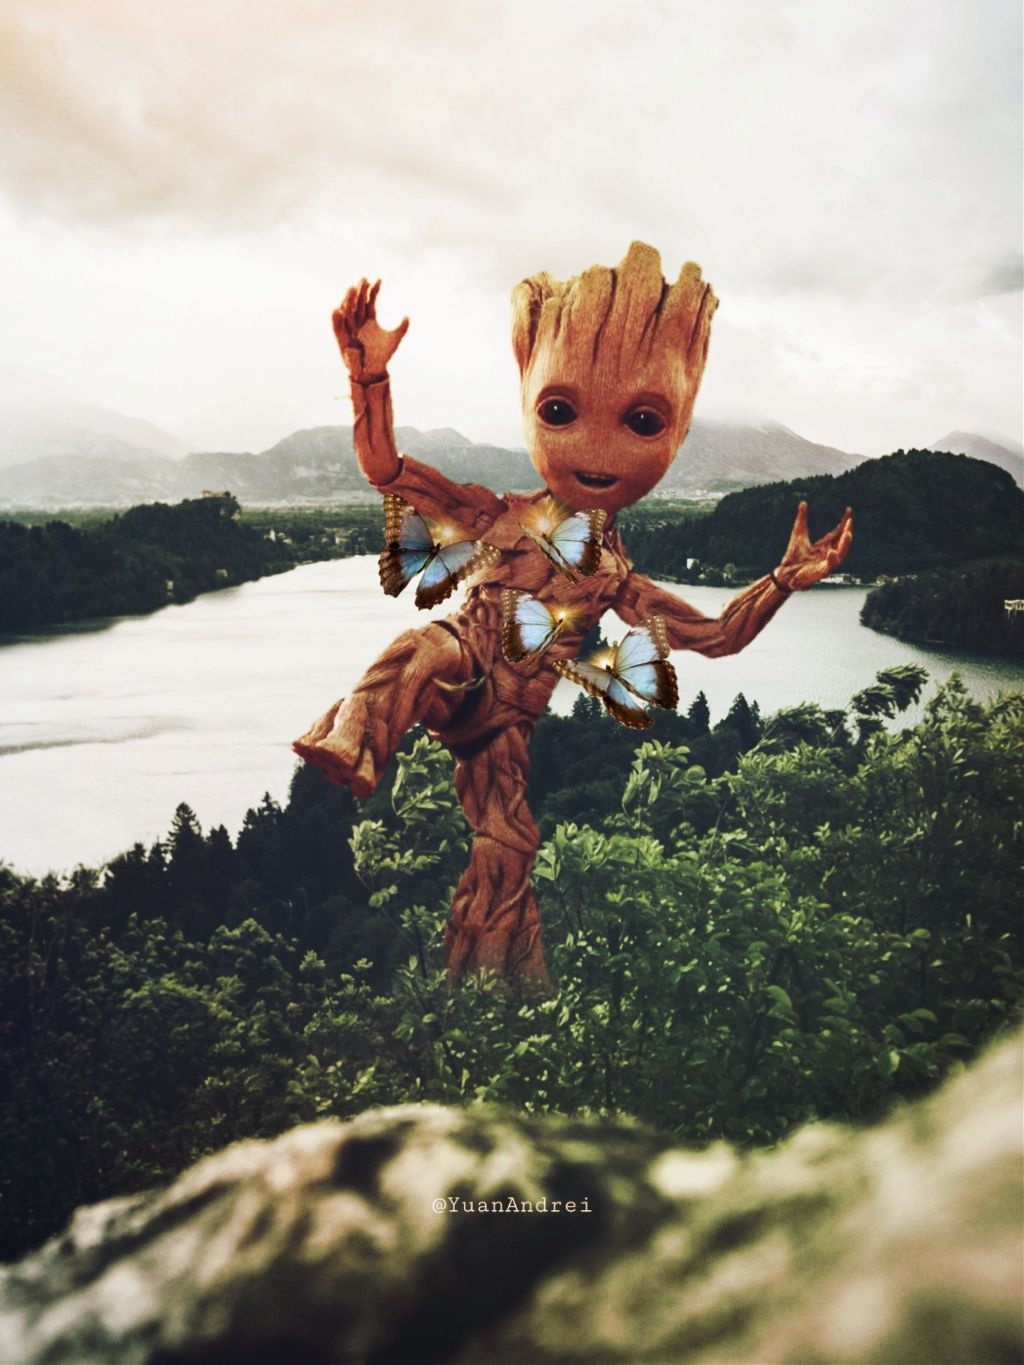 I remixed one of my son's artwork. 😊Please visit his gallery 🥰😊 he also loves picsart @yuan_andrei andrei #freetoedit #supportive #son #yuanandrei #fantasy #groot